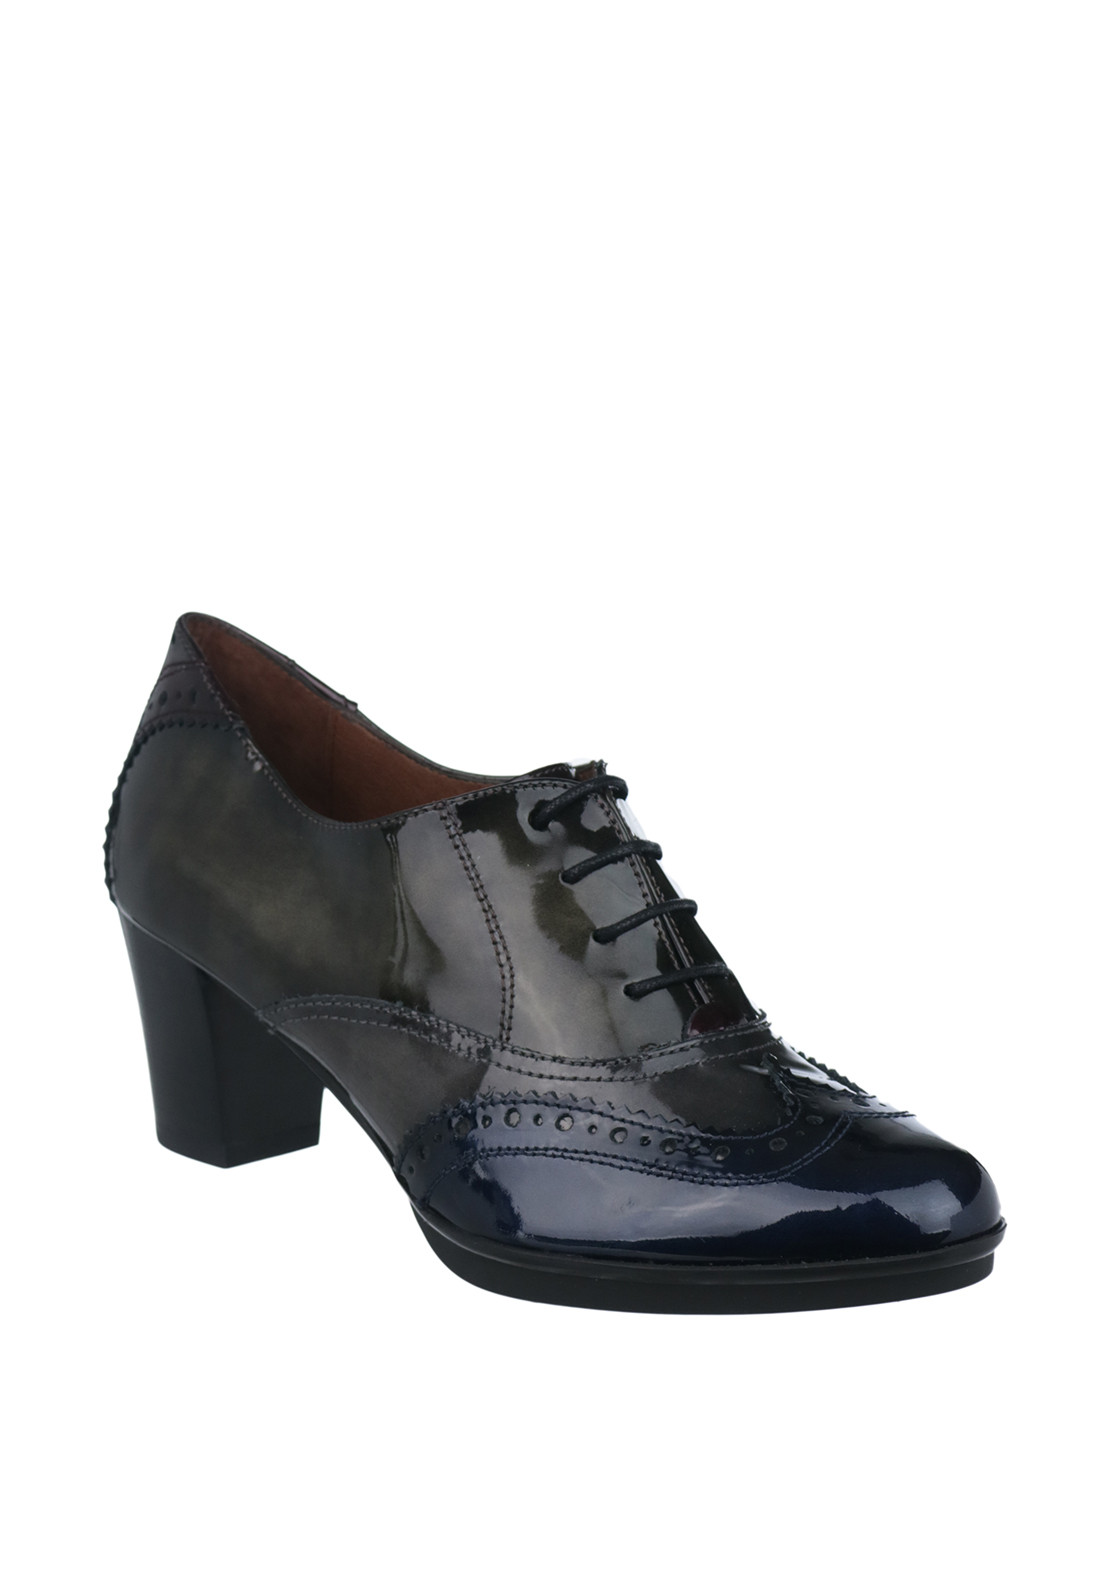 Hispanitas Patent Leather Heeled Brogues, Multi-Coloured